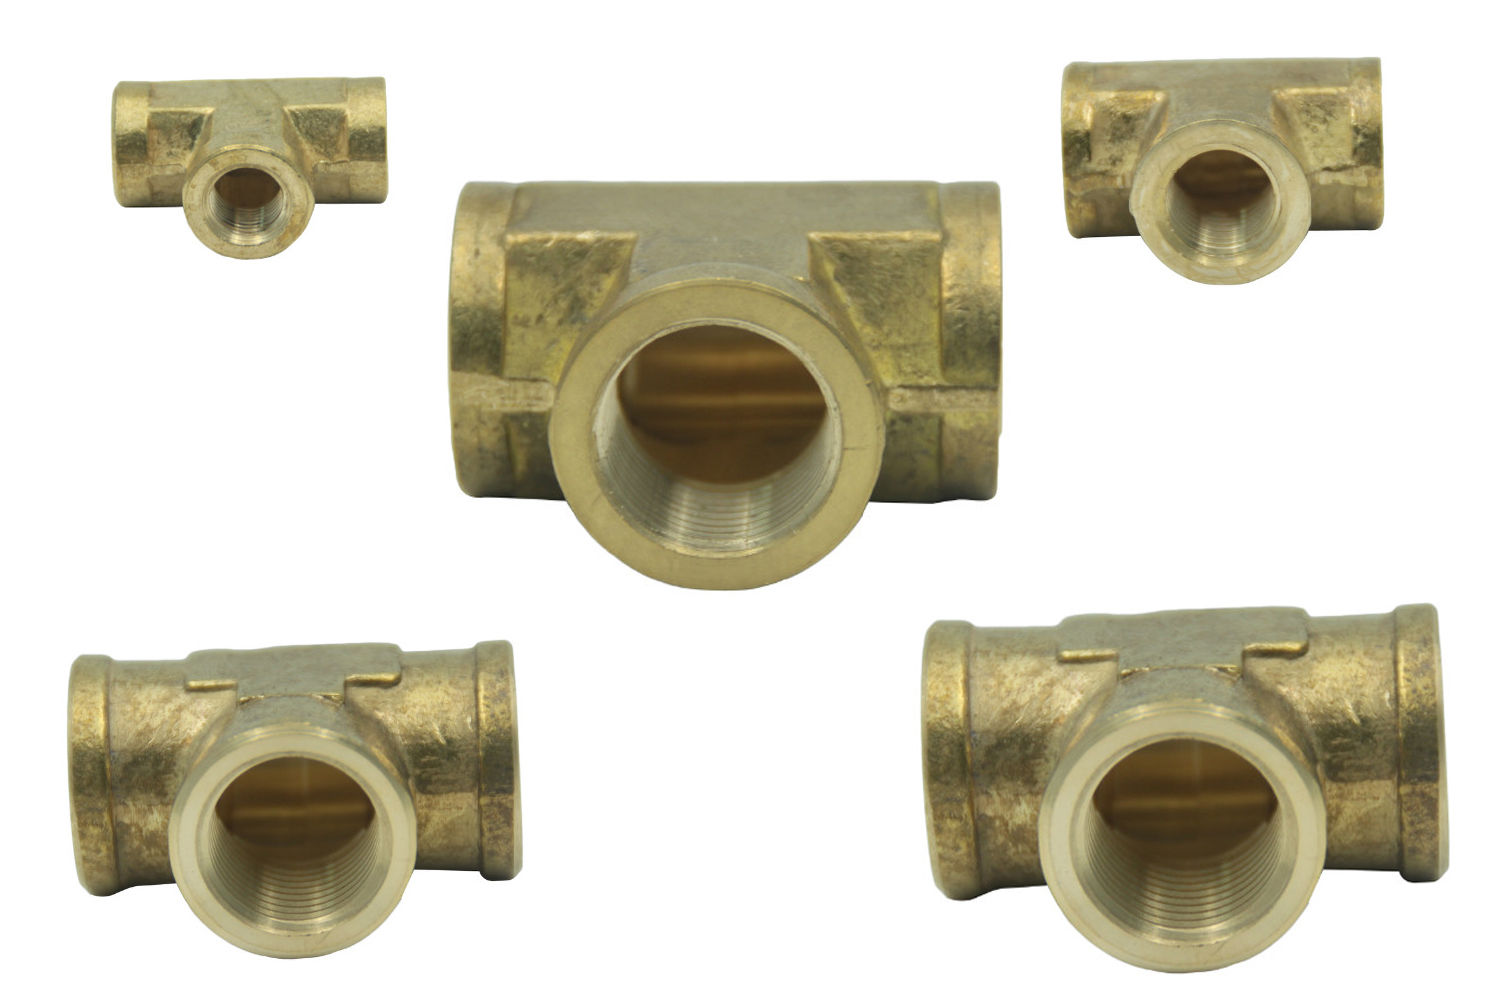 Brass Female BSPP Tee Pipe Fitting  sc 1 st  Unplugged Power Systems & Brass Female BSPP Tee Pipe Fitting | UnpluggedPowerSystems